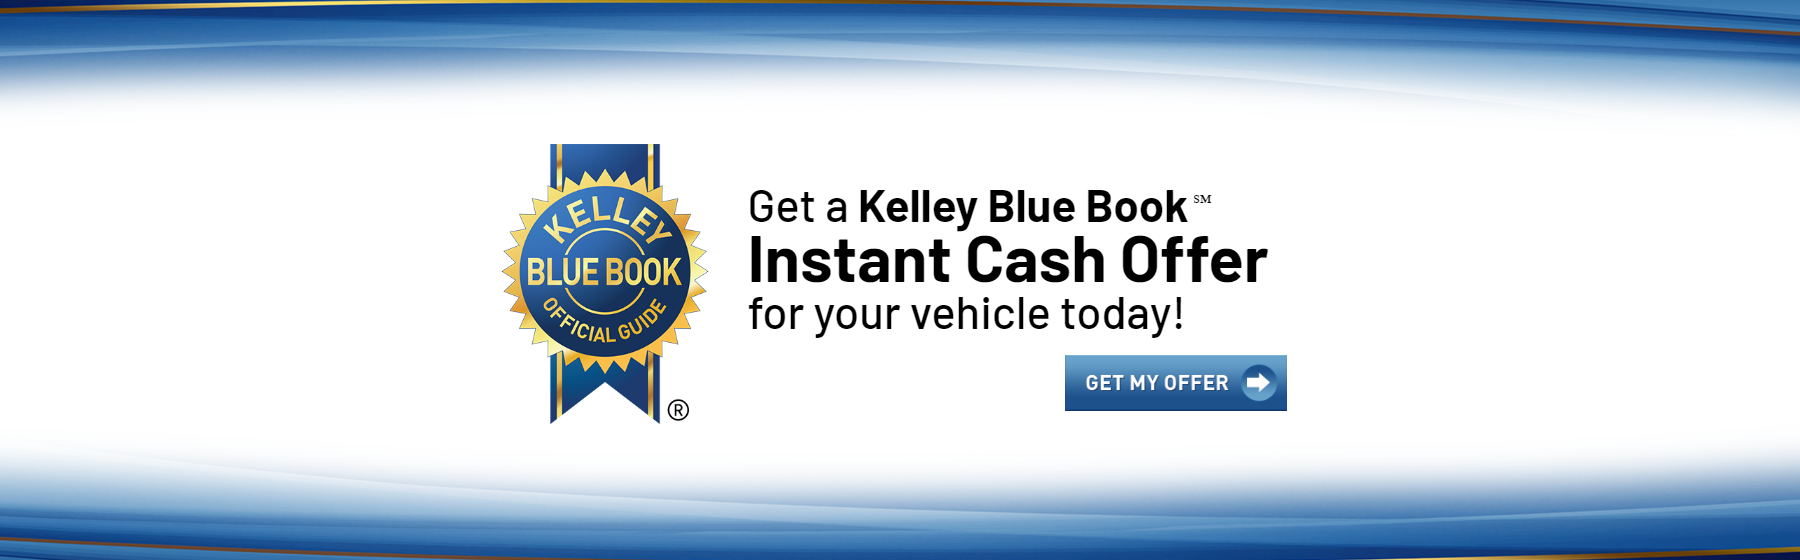 get a kelly blue book instant cash offer for your vehicle today